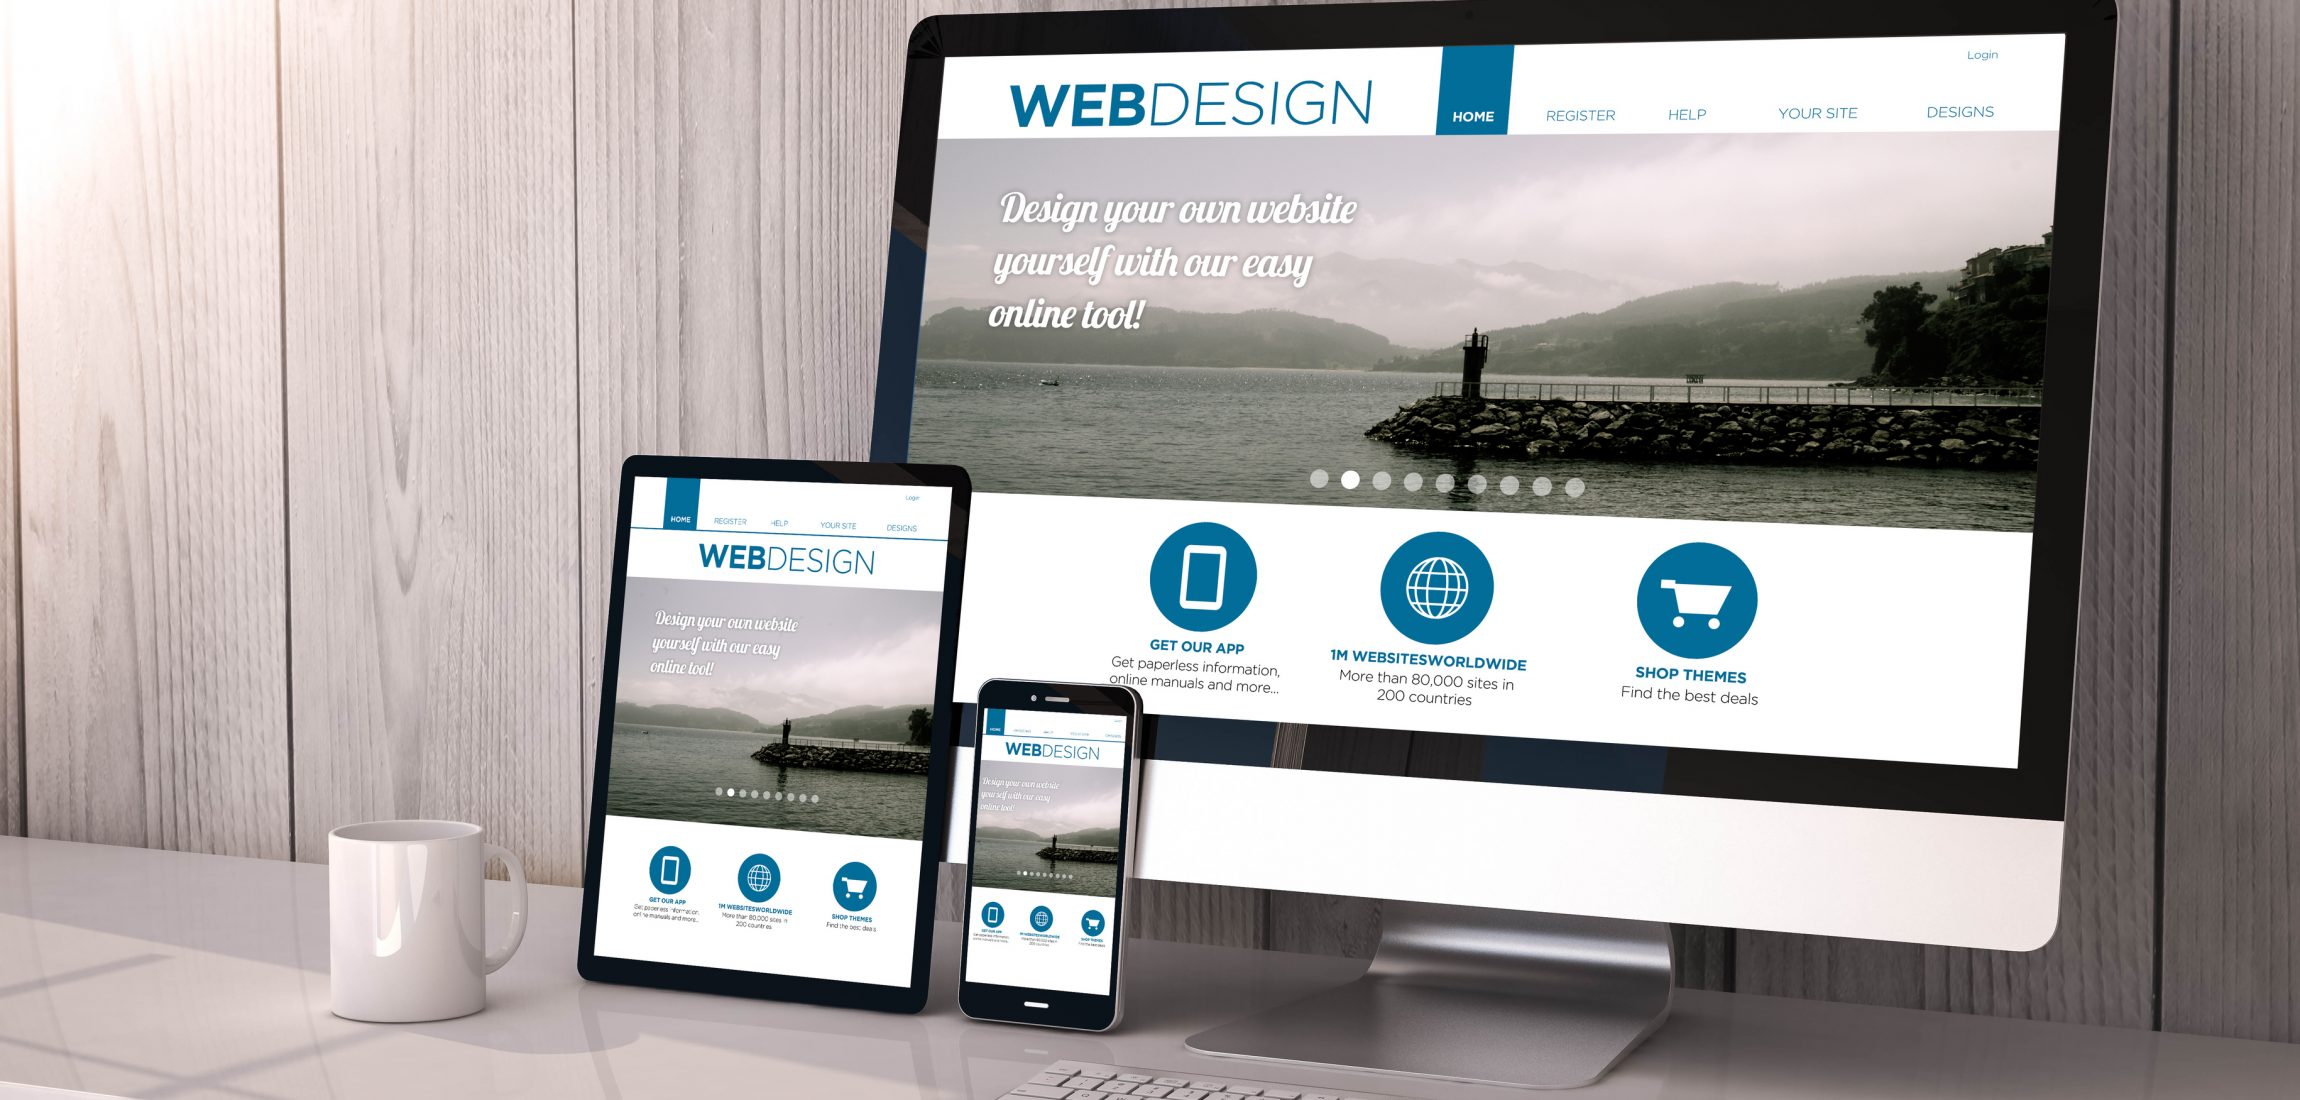 Digital generated devices on desktop, responsive blank mock-up with web design fluid template website  on screen. All screen graphics are made up.